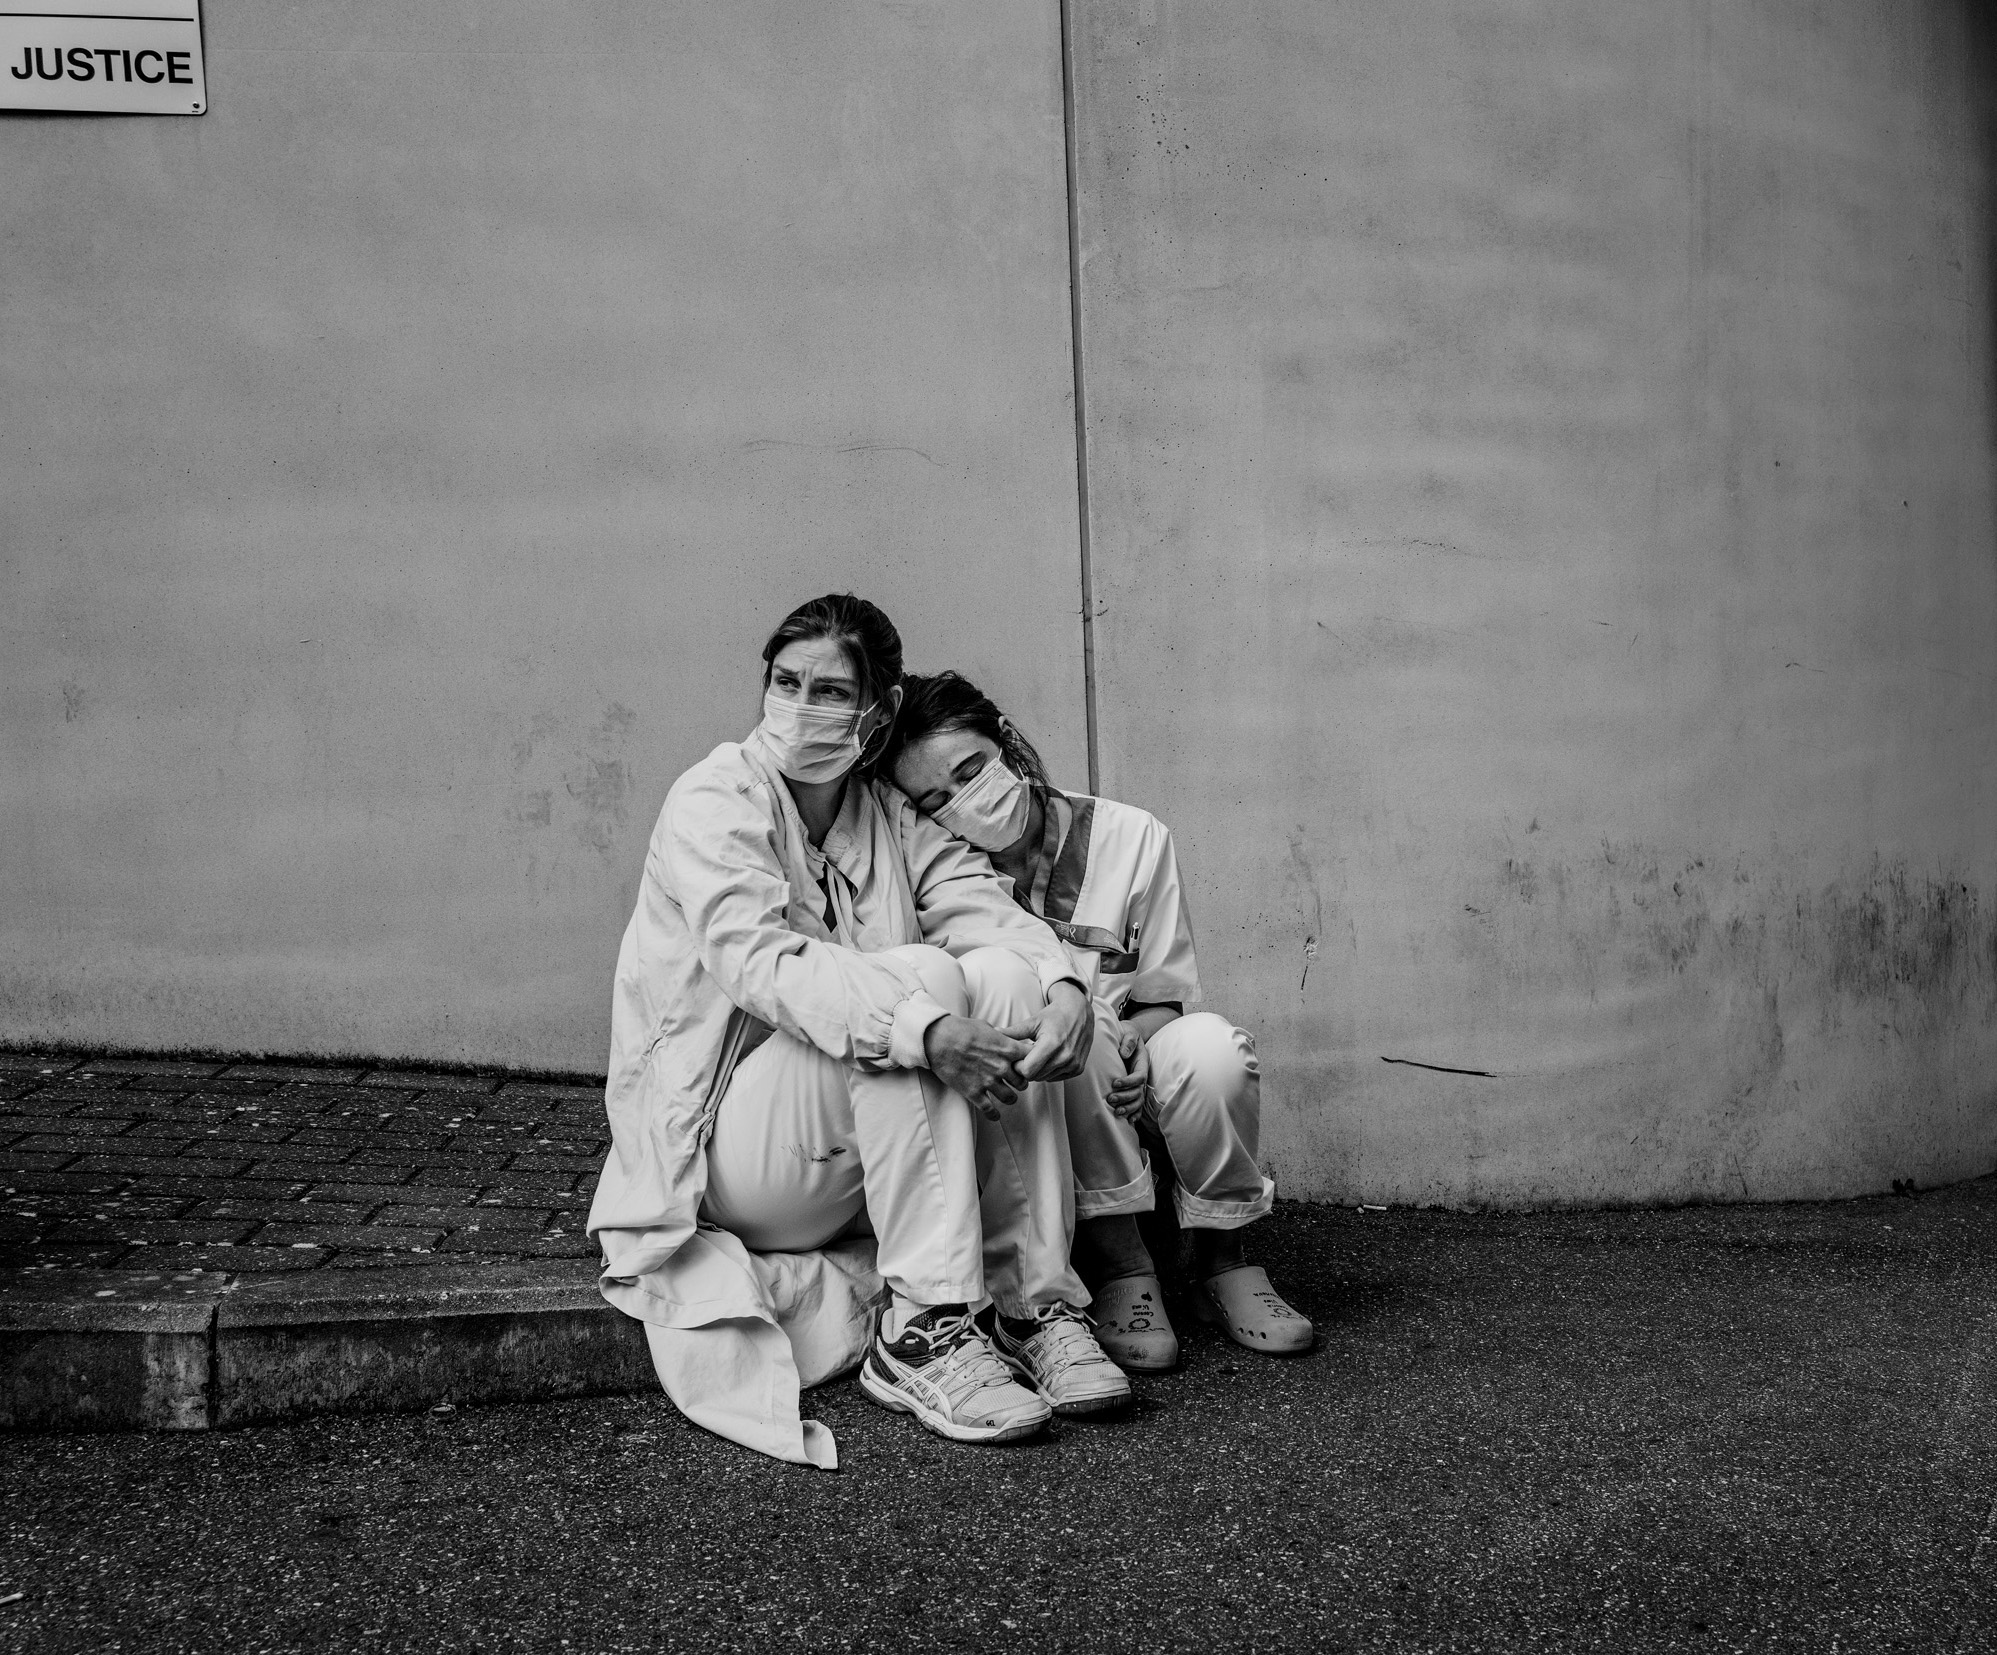 Picture of two nurses sitting on a curb, one tenderly resting her head on the other